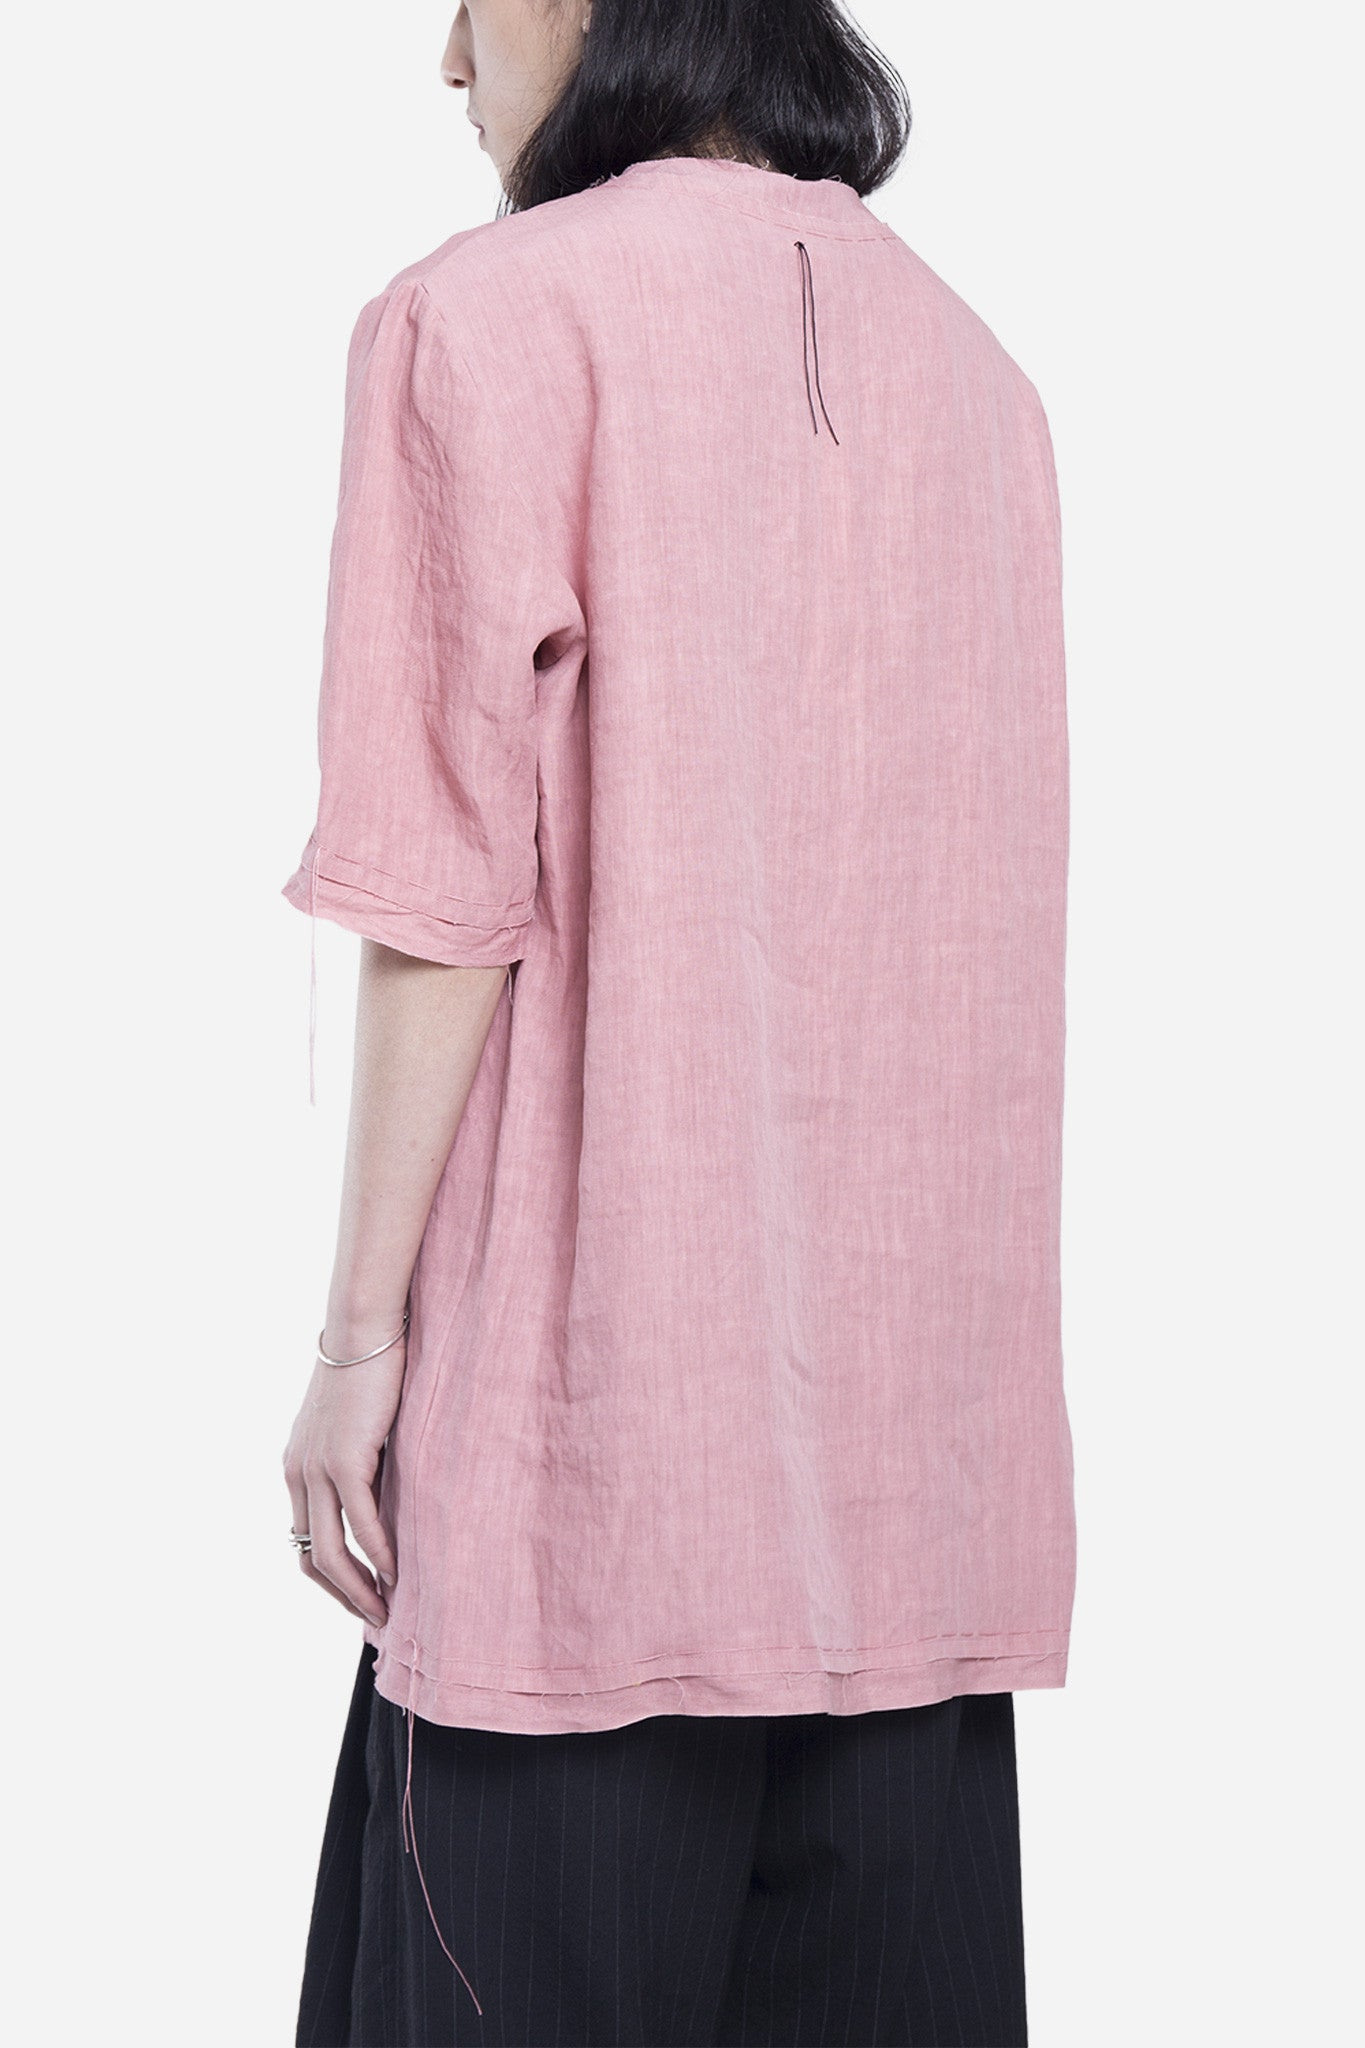 Tireo Stitched Top Shirt Rose